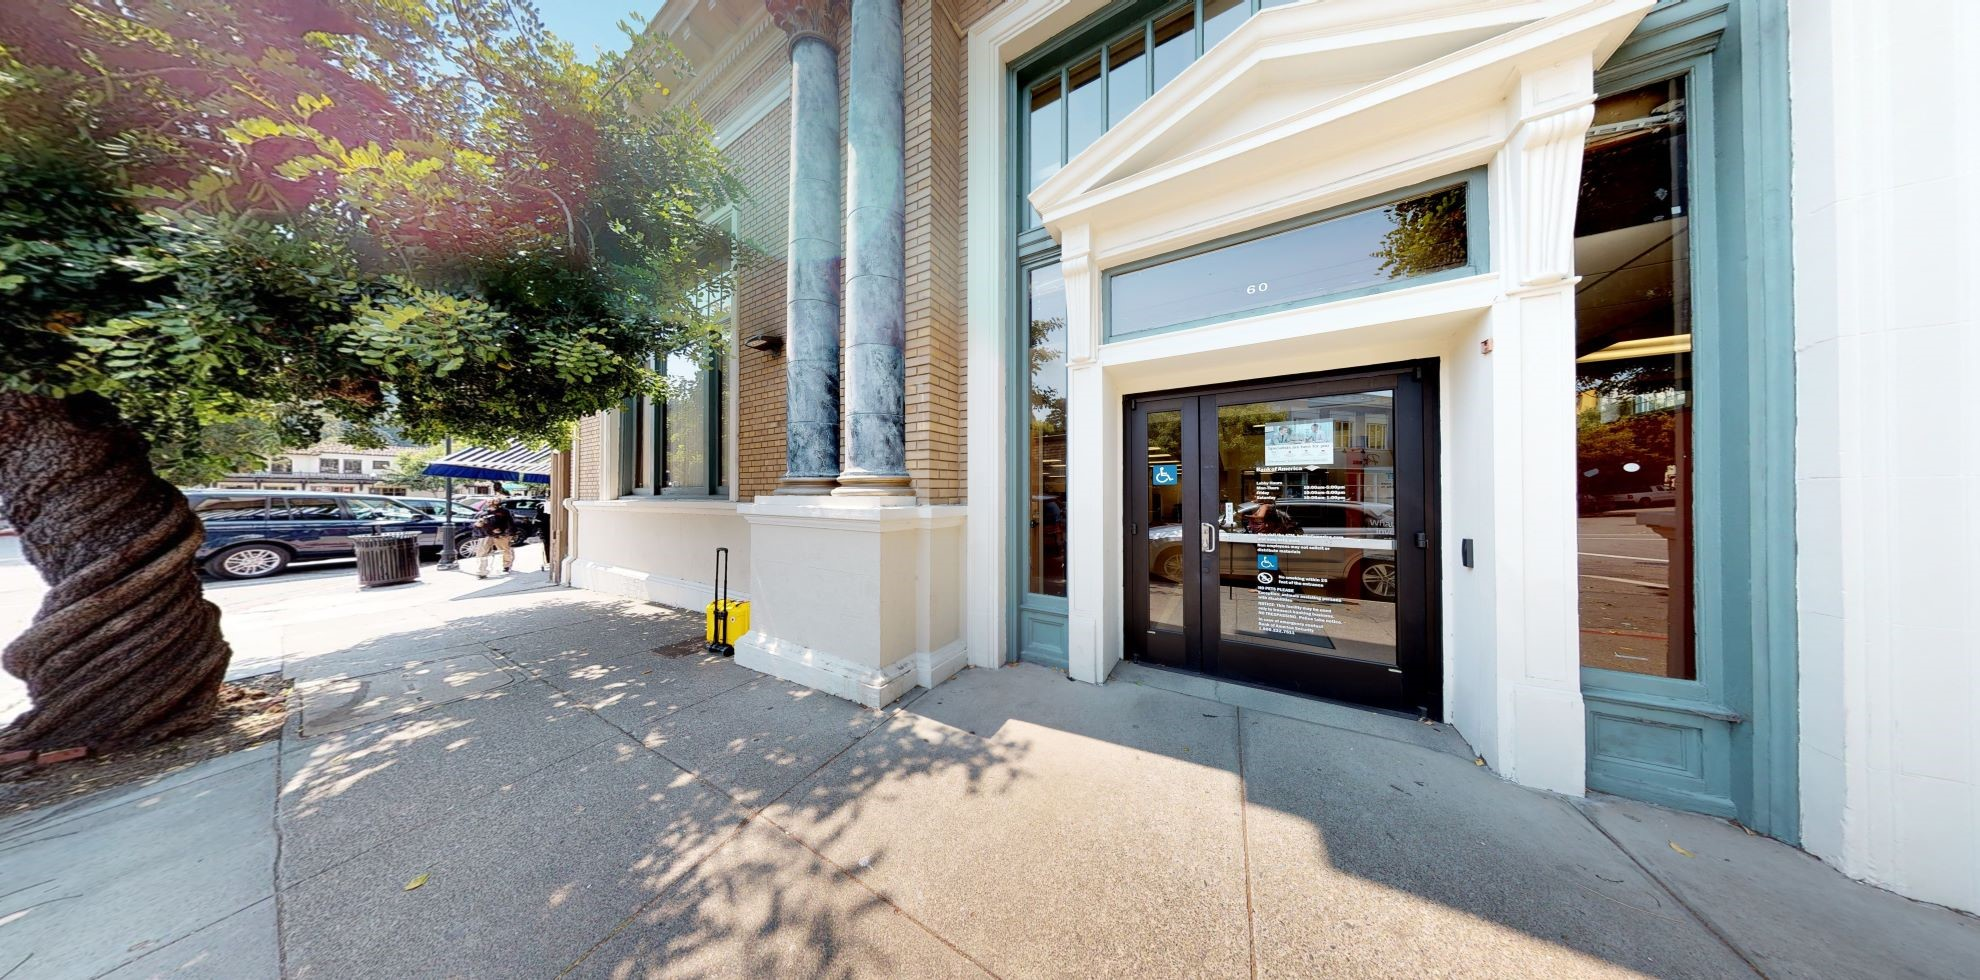 Bank of America financial center with walk-up ATM   60 Throckmorton Ave, Mill Valley, CA 94941